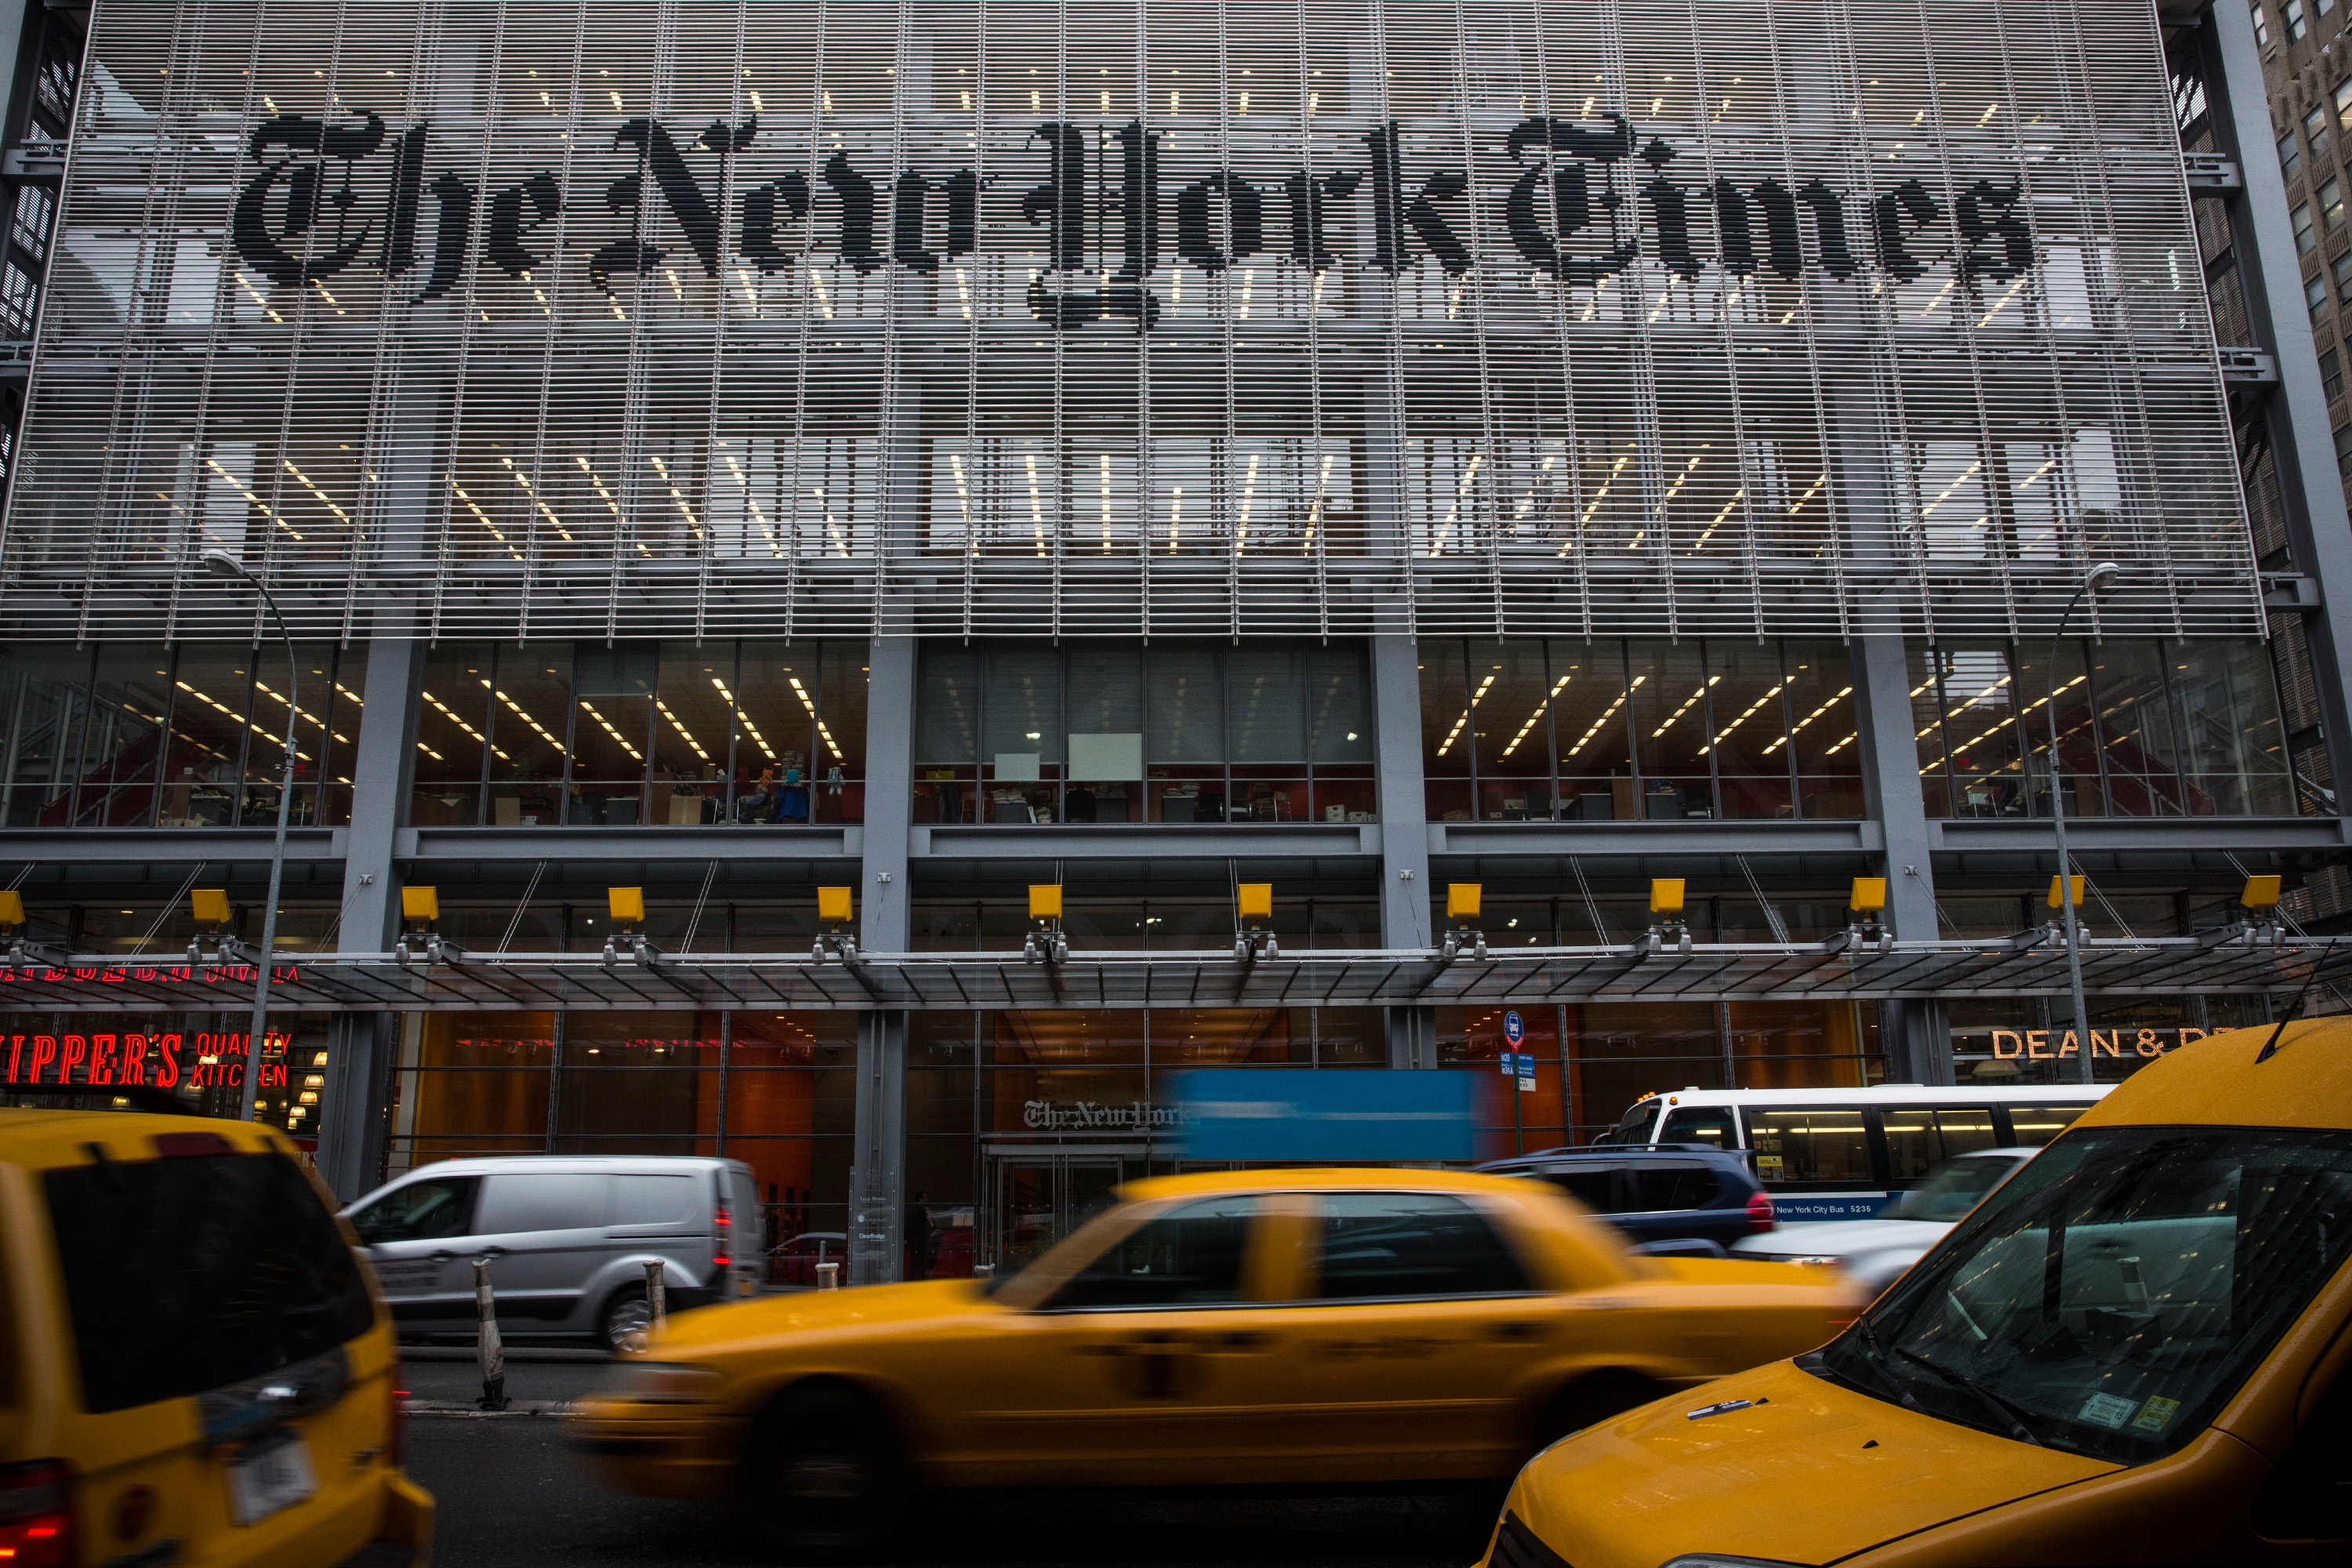 The New York Times Announces Cuts To Newsroom Staff